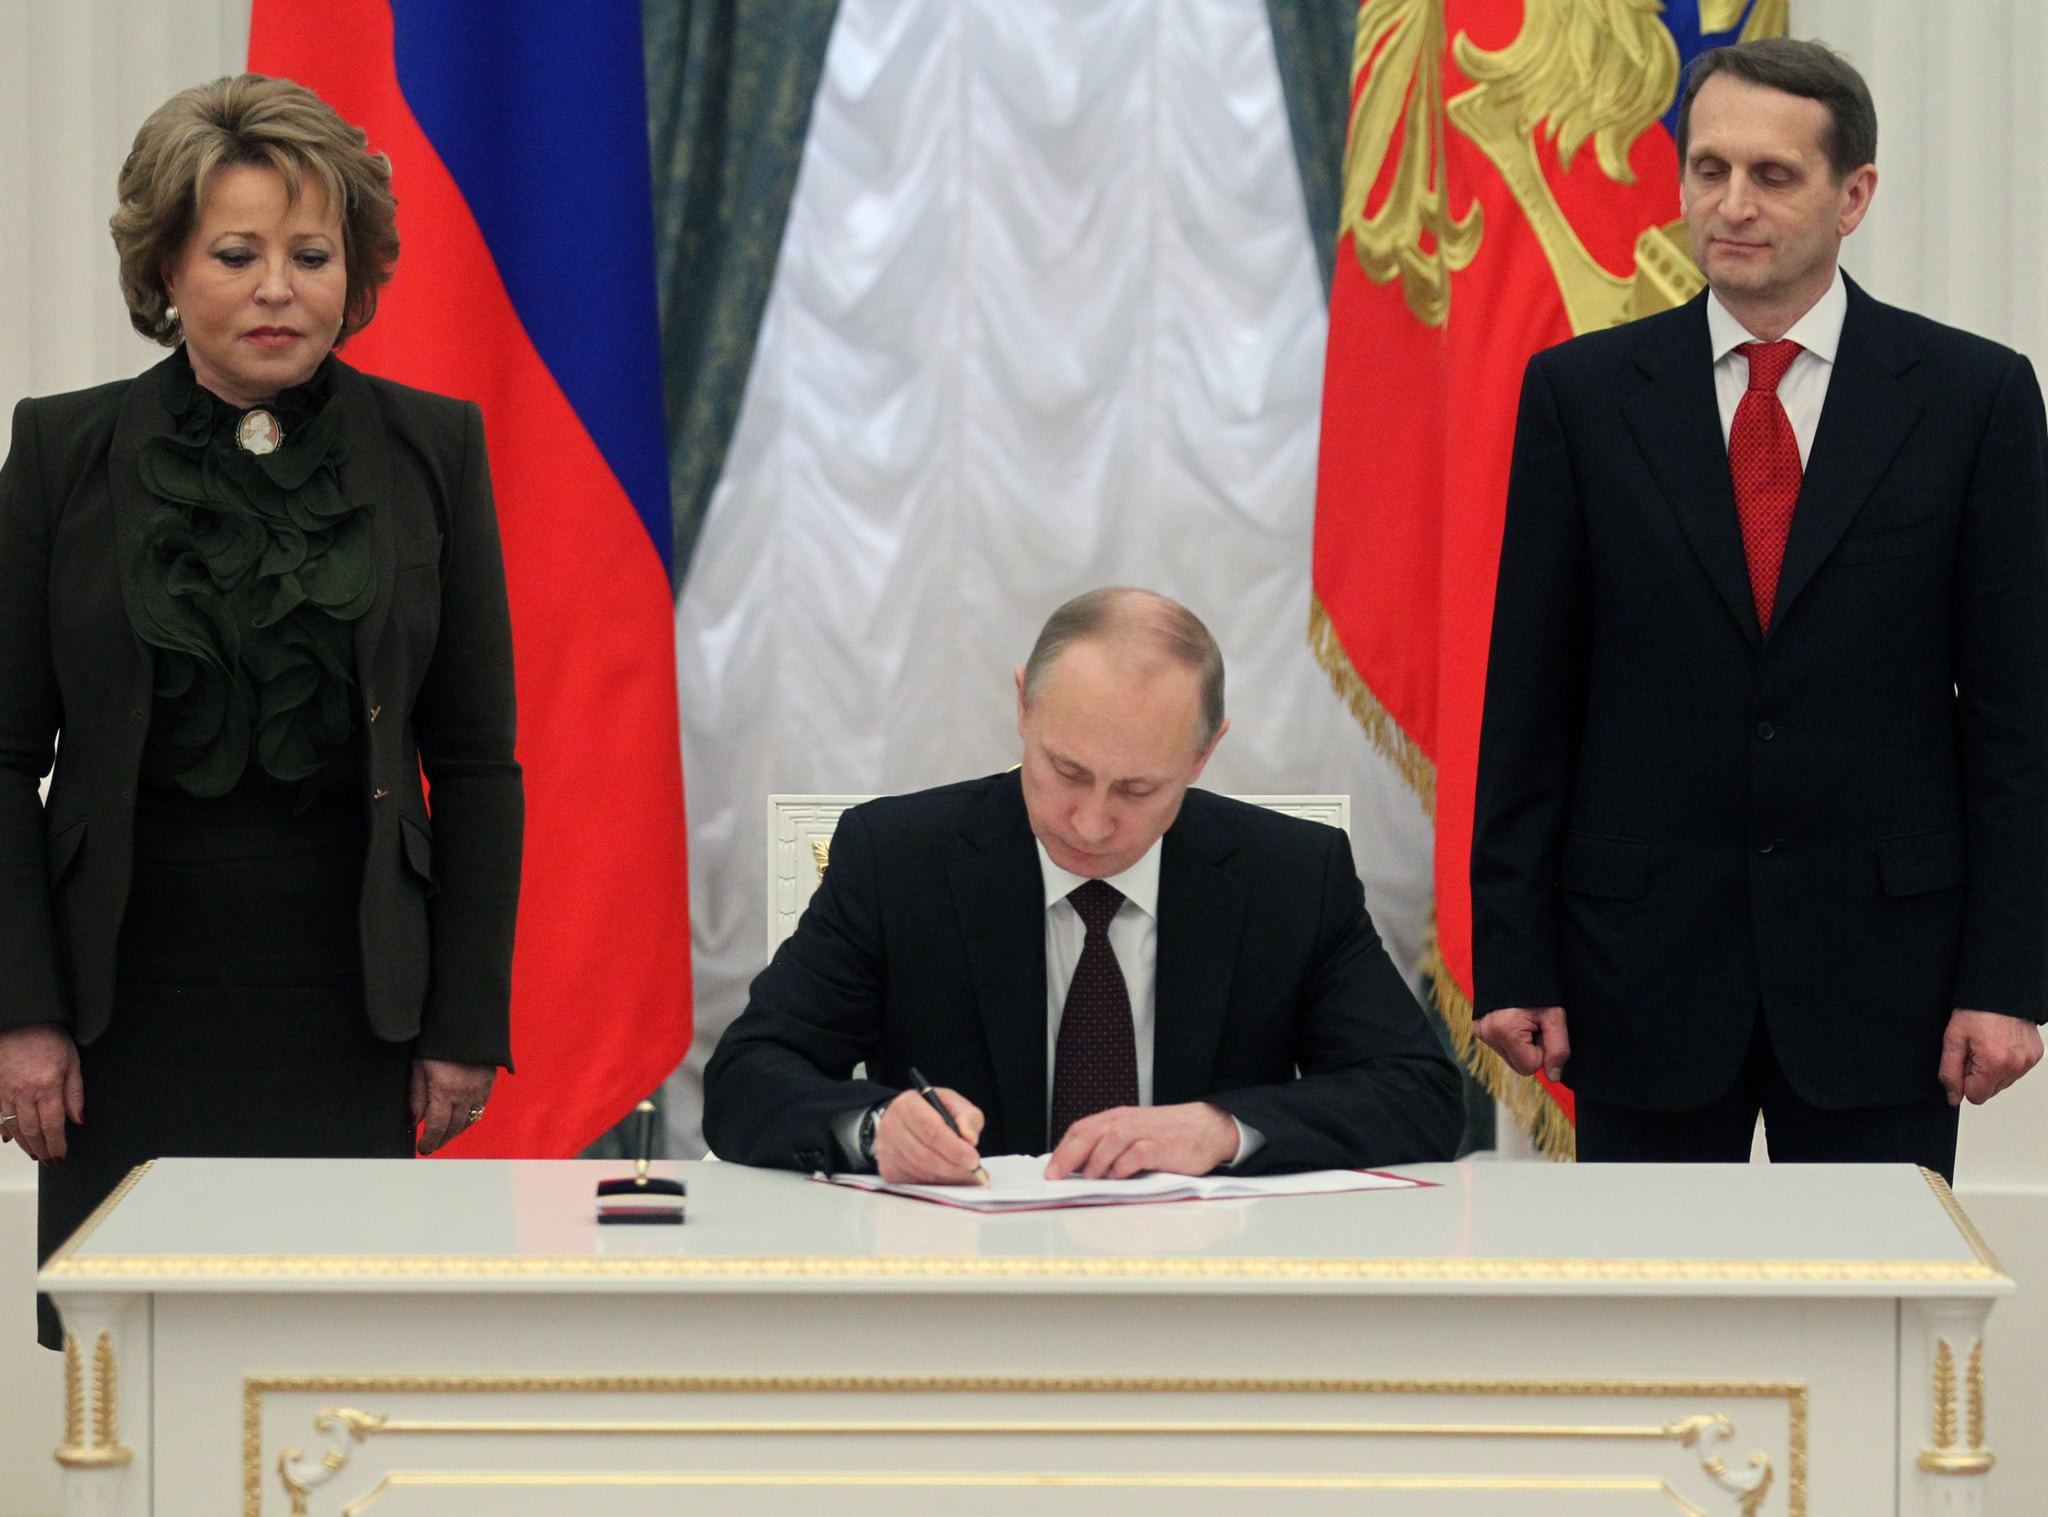 On Friday, Putin signed laws to complete the annexation of Crimea. His move came shortly after Ukraine agreed to a trade deal with the EU — the same deal that former Ukrainian President Viktor Yanukovych had refused to sign last November, sparking the protests. We'll have to wait to see what happens next.